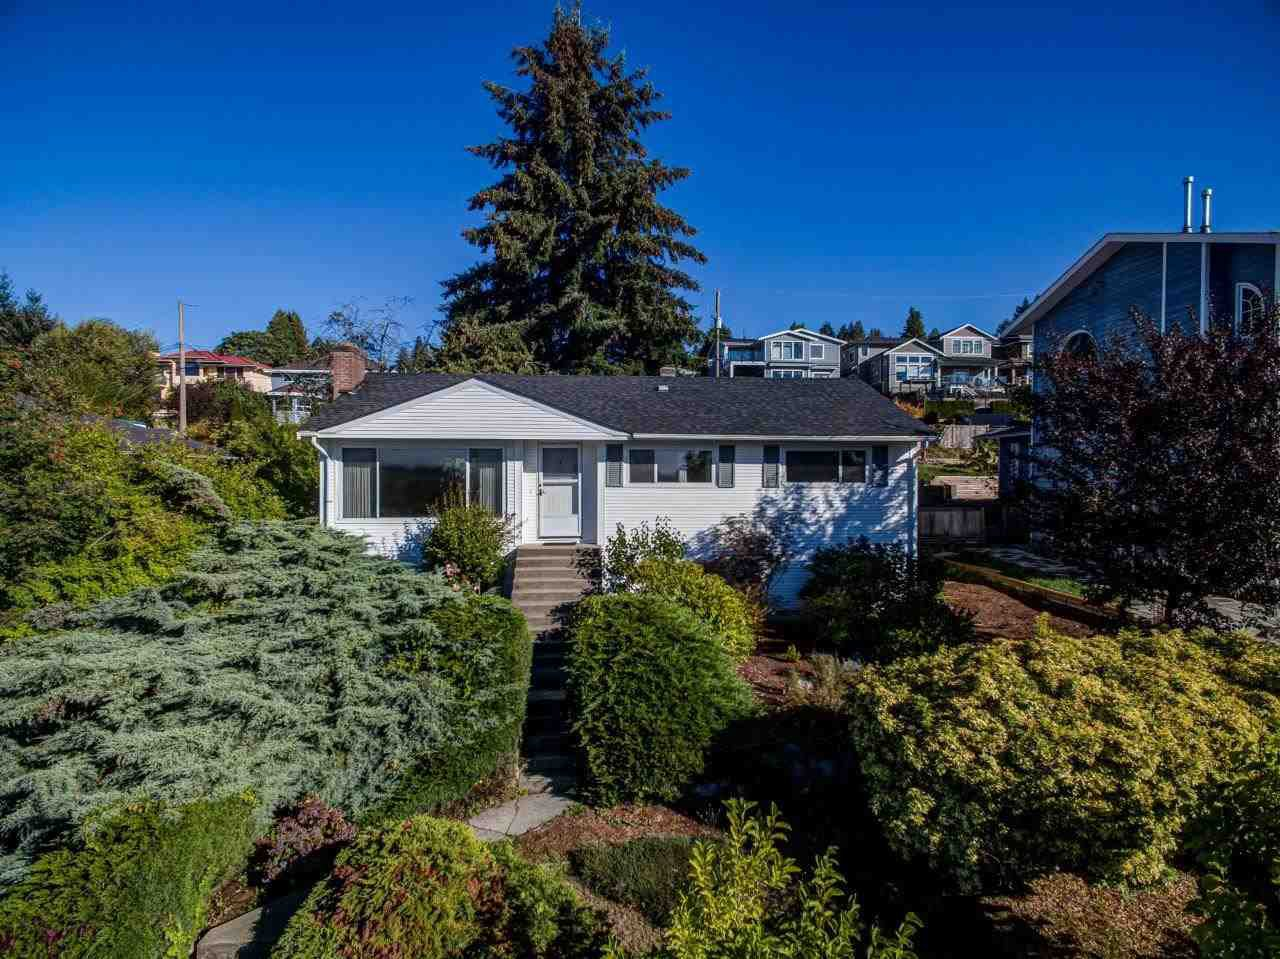 Main Photo: 4479 CARSON Street in Burnaby: South Slope House for sale (Burnaby South)  : MLS®# R2502932